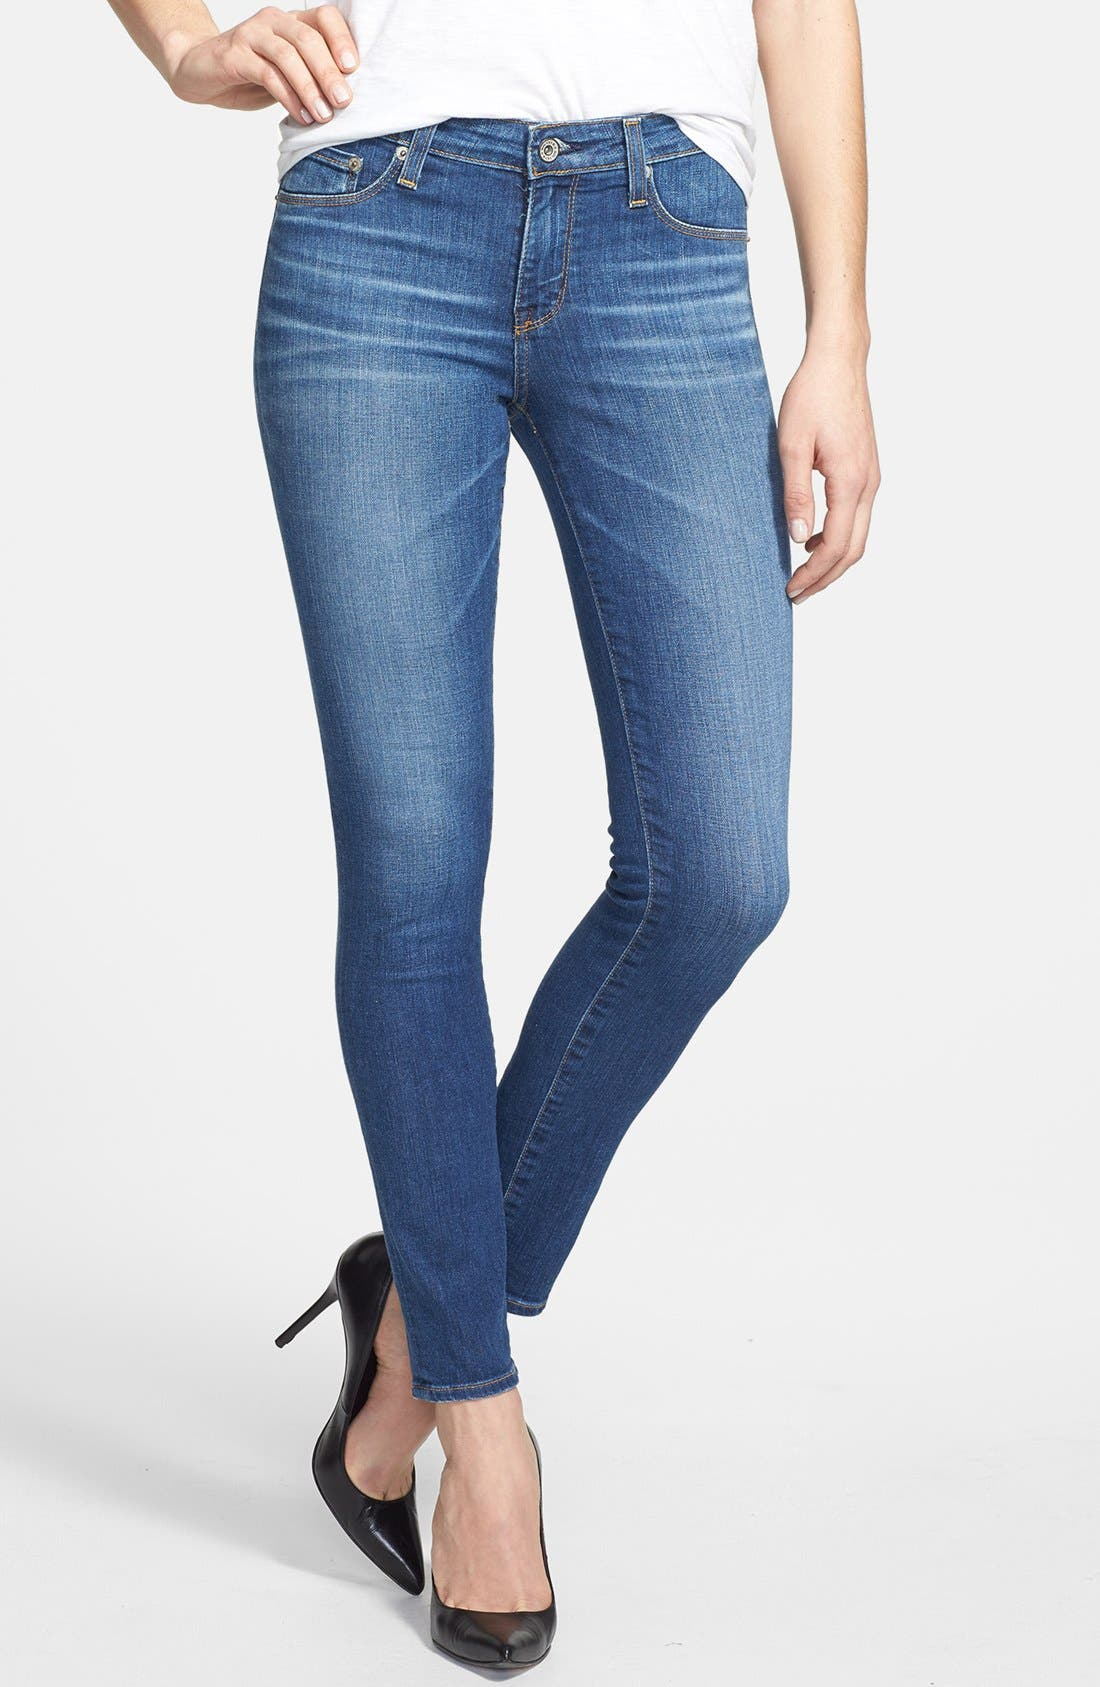 Alternate Image 1 Selected - Big Star 'Alex' Stretch Skinny Jeans (Oxford) (Petite)